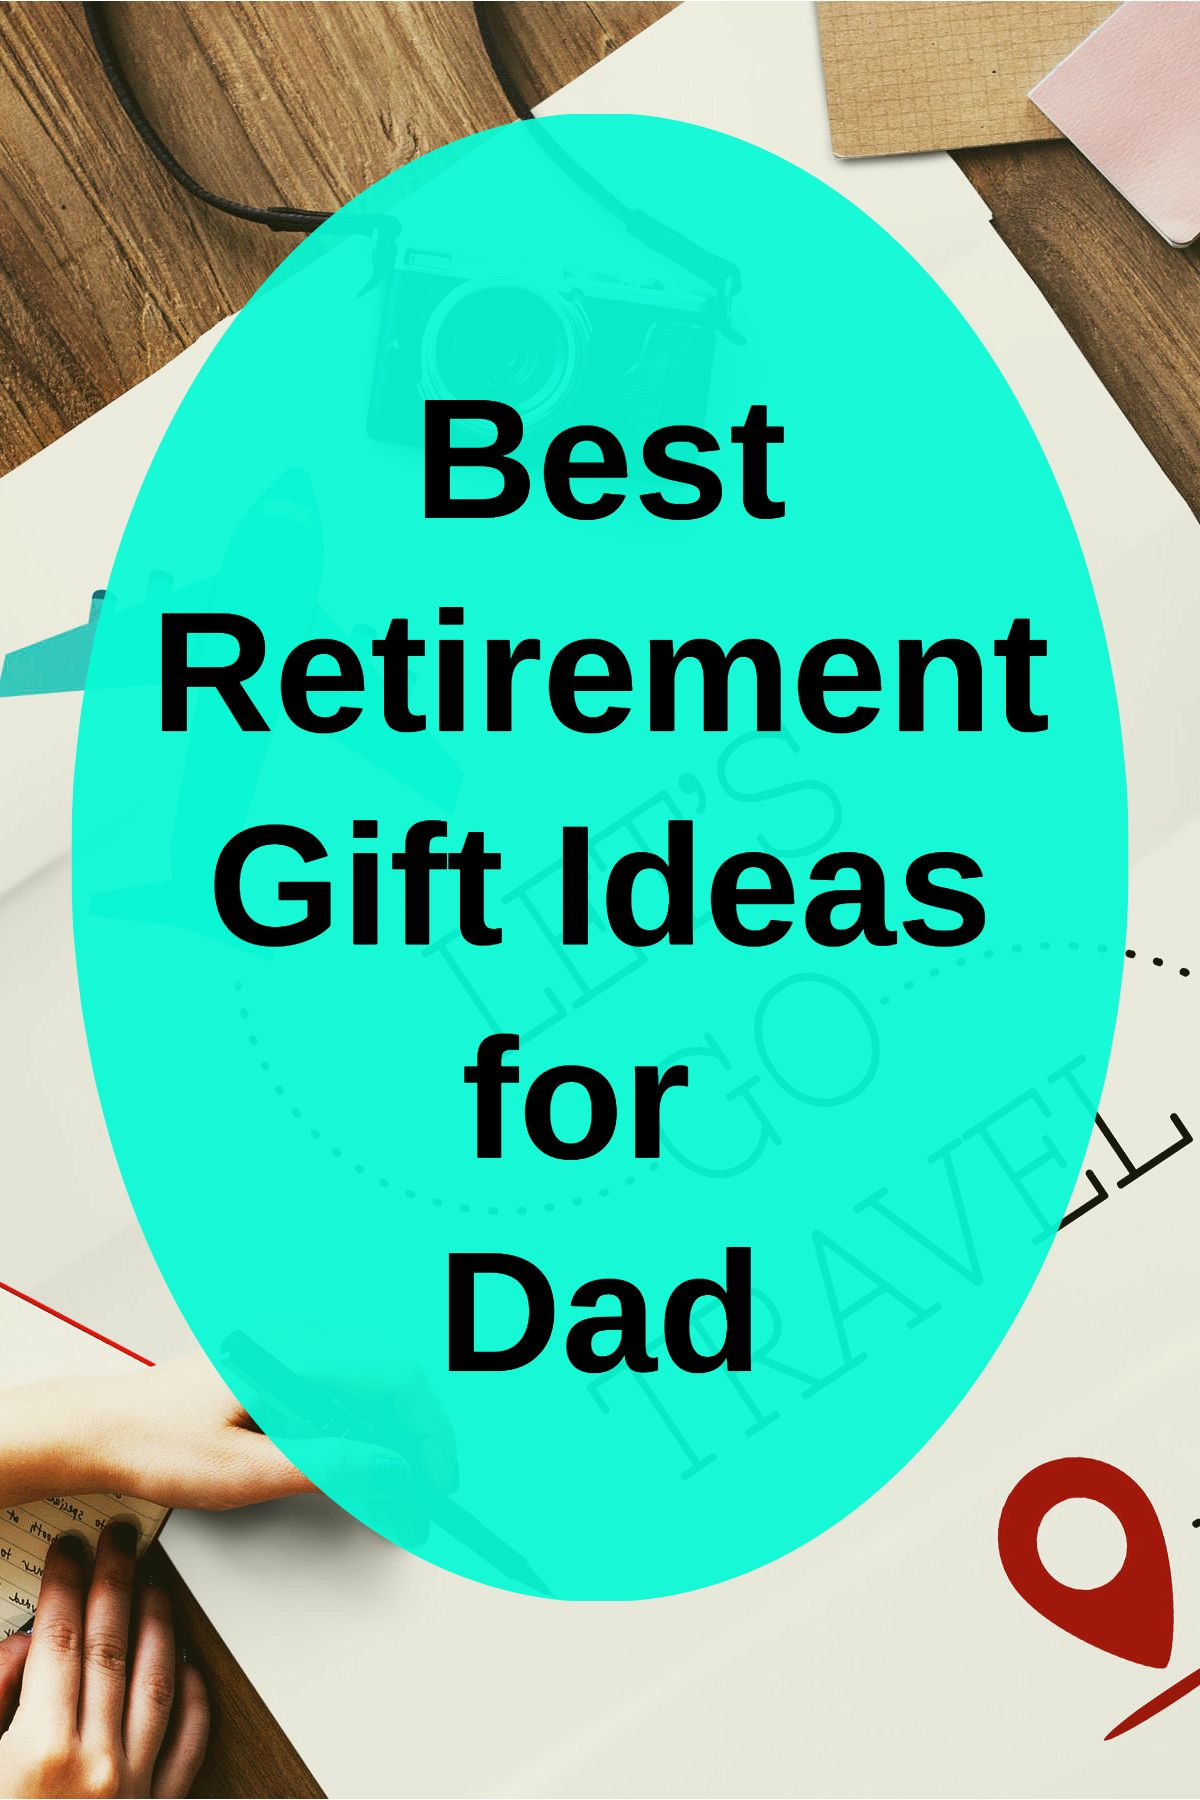 Best Retirement Gift Ideas For Dad That He Is Bound To Love